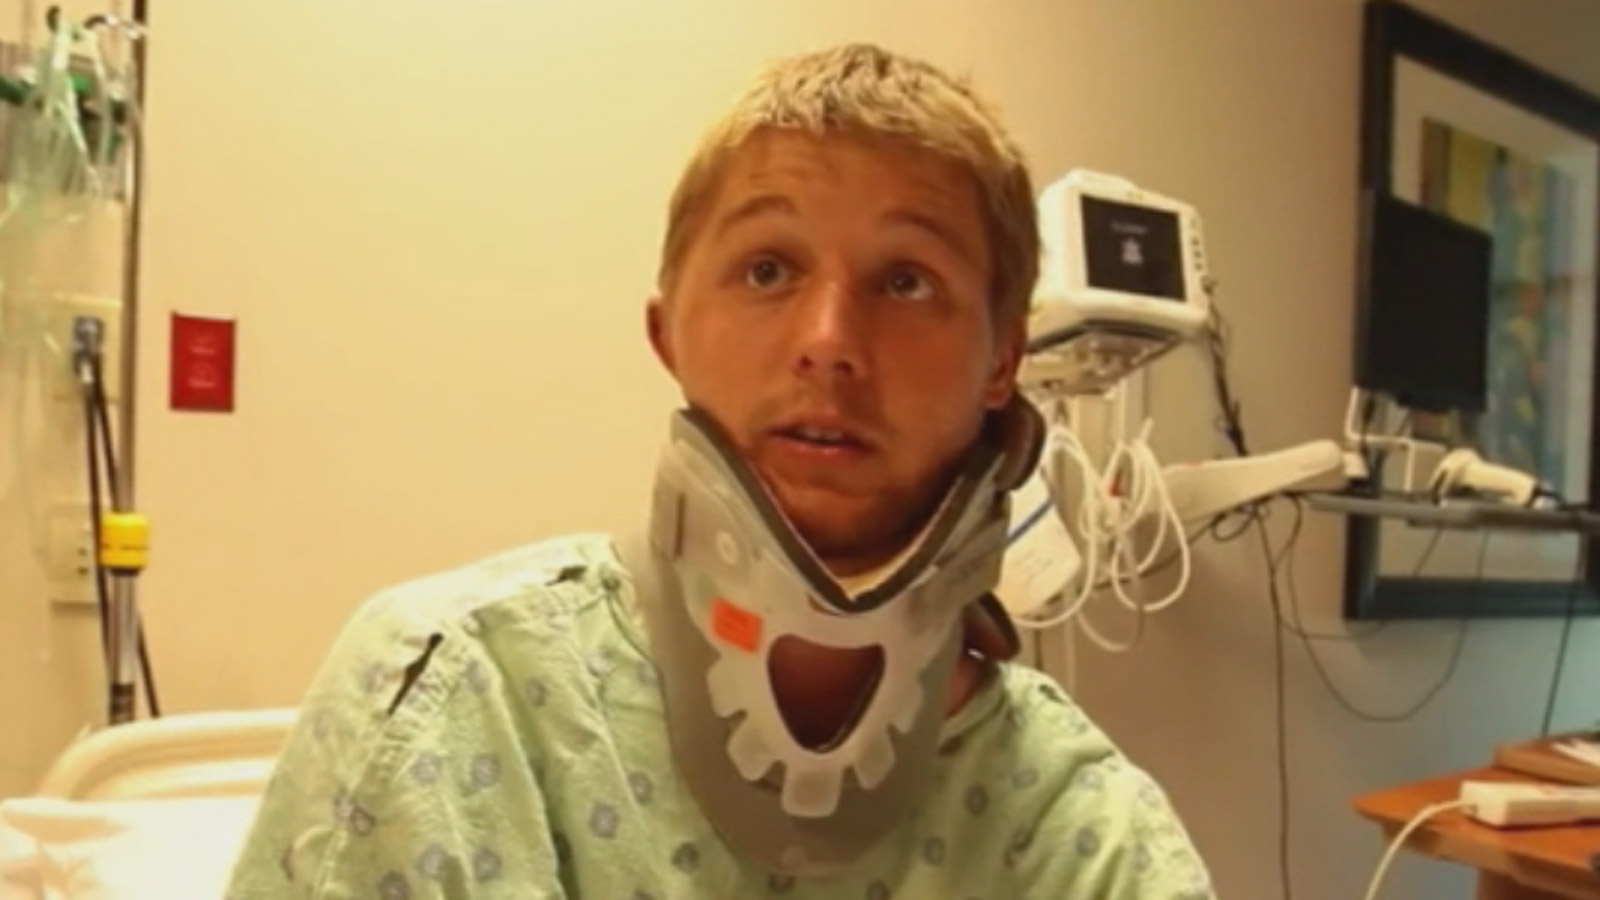 Joshua Barber describes being attacked by a bear (credit: Durango Herald)